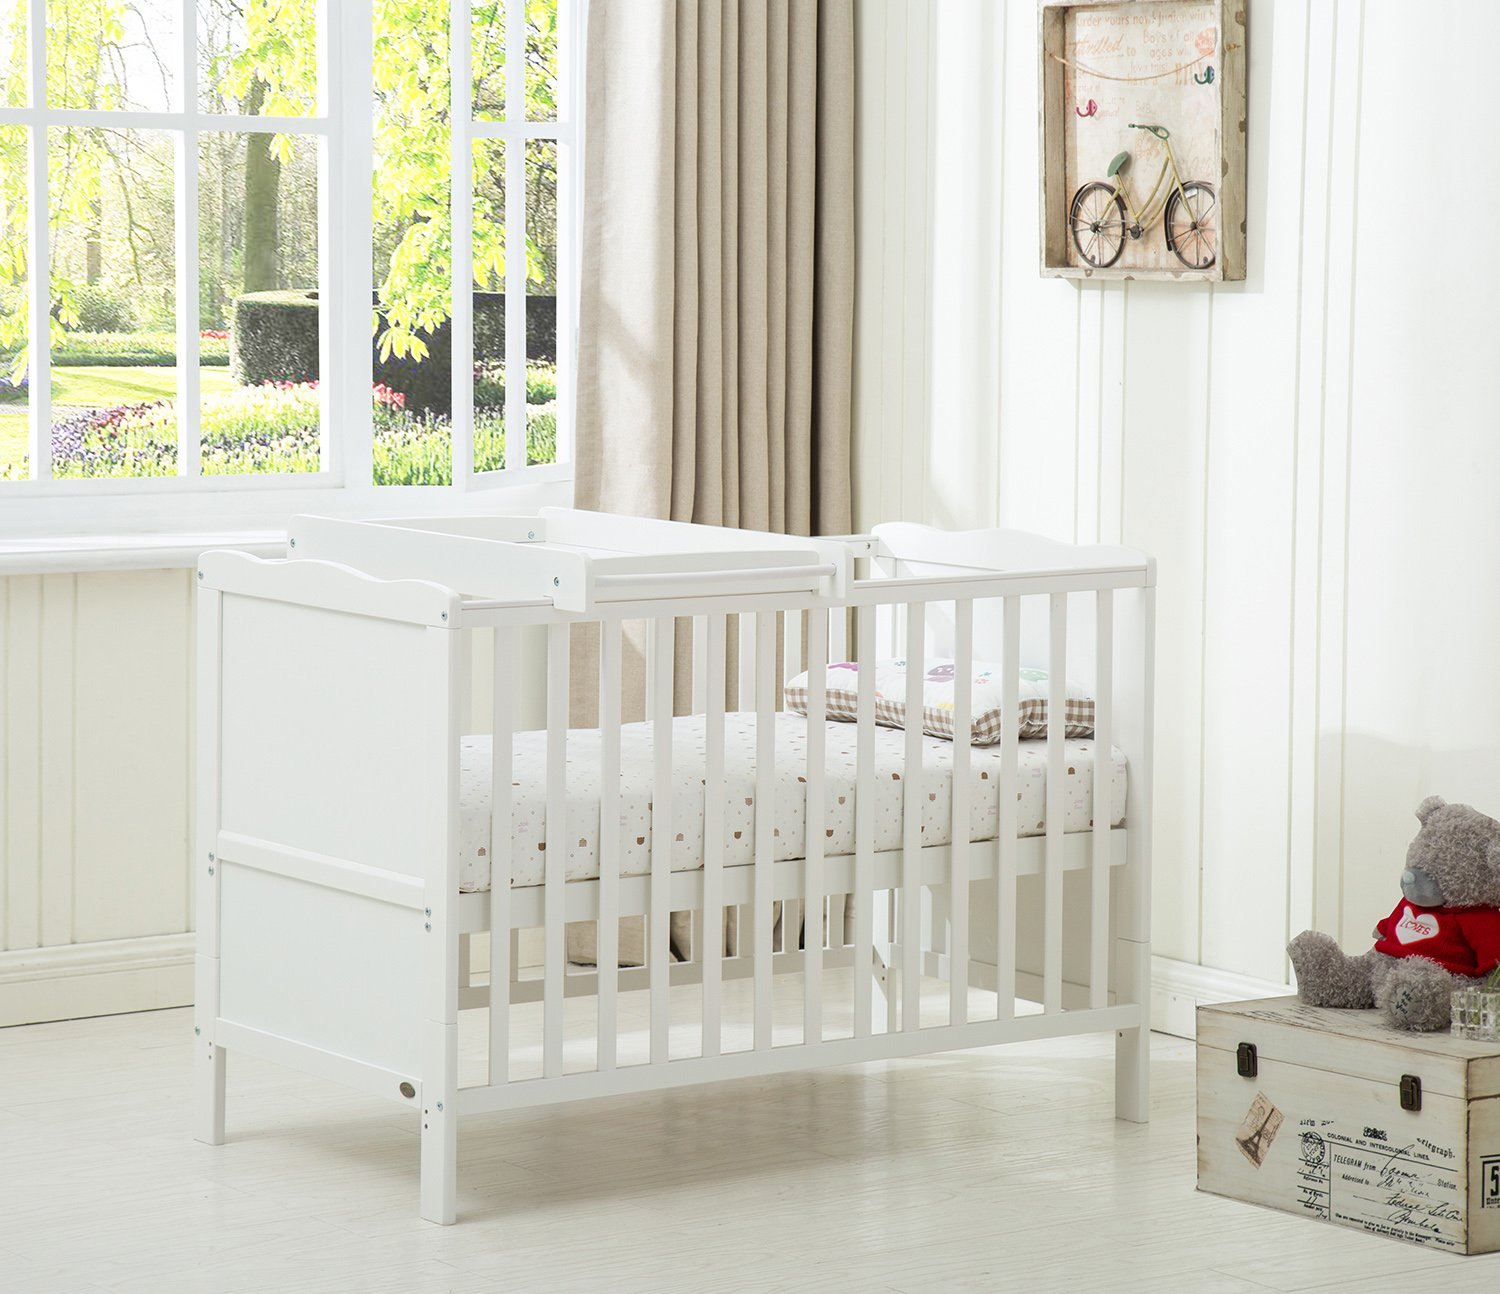 MCC Wooden Baby Cot Bed Orlando With Top Changer & Water repellent Mattress Mcc®